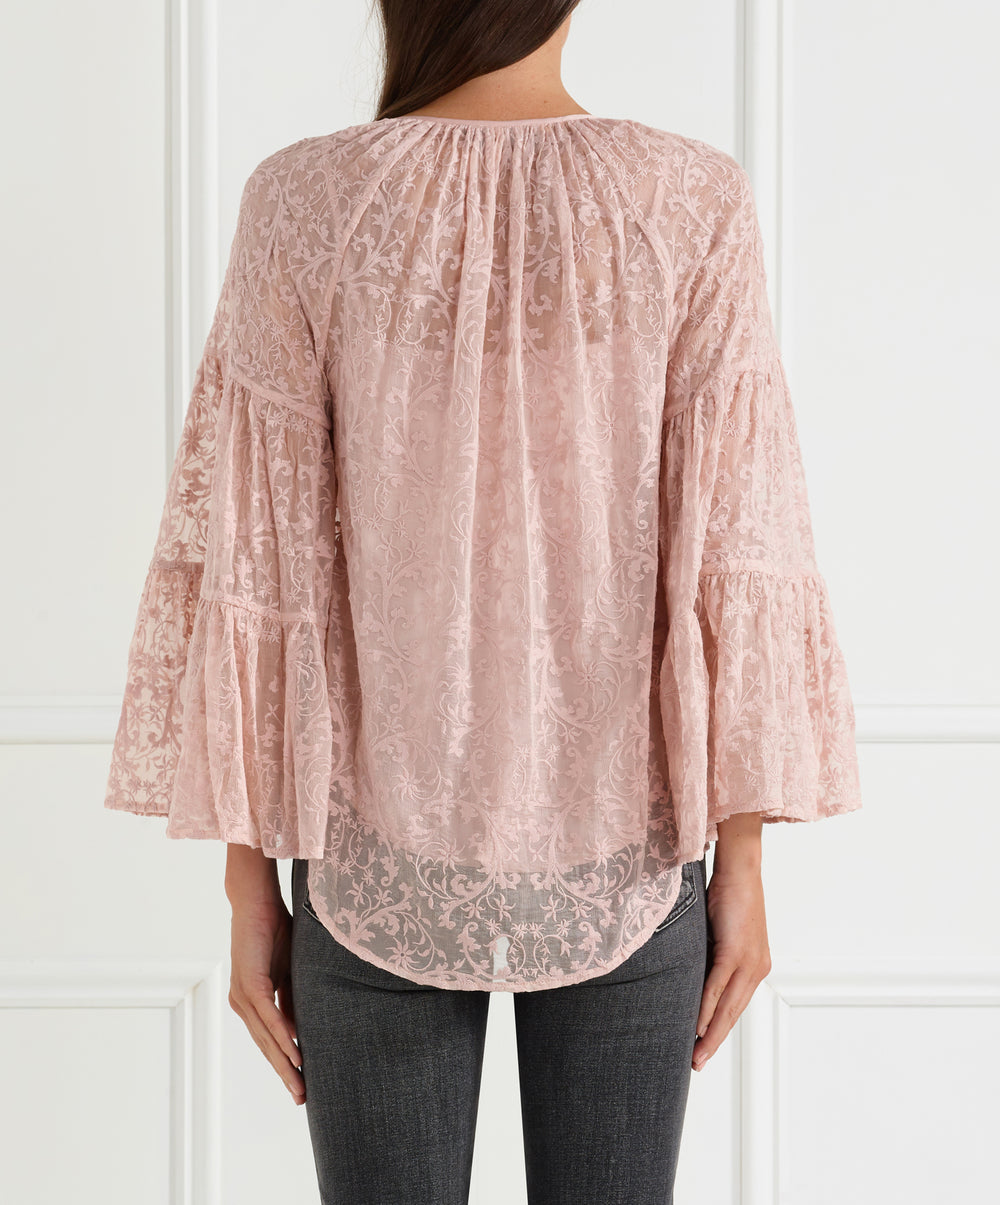 Everlasting Dramatic Sleeve Blouse